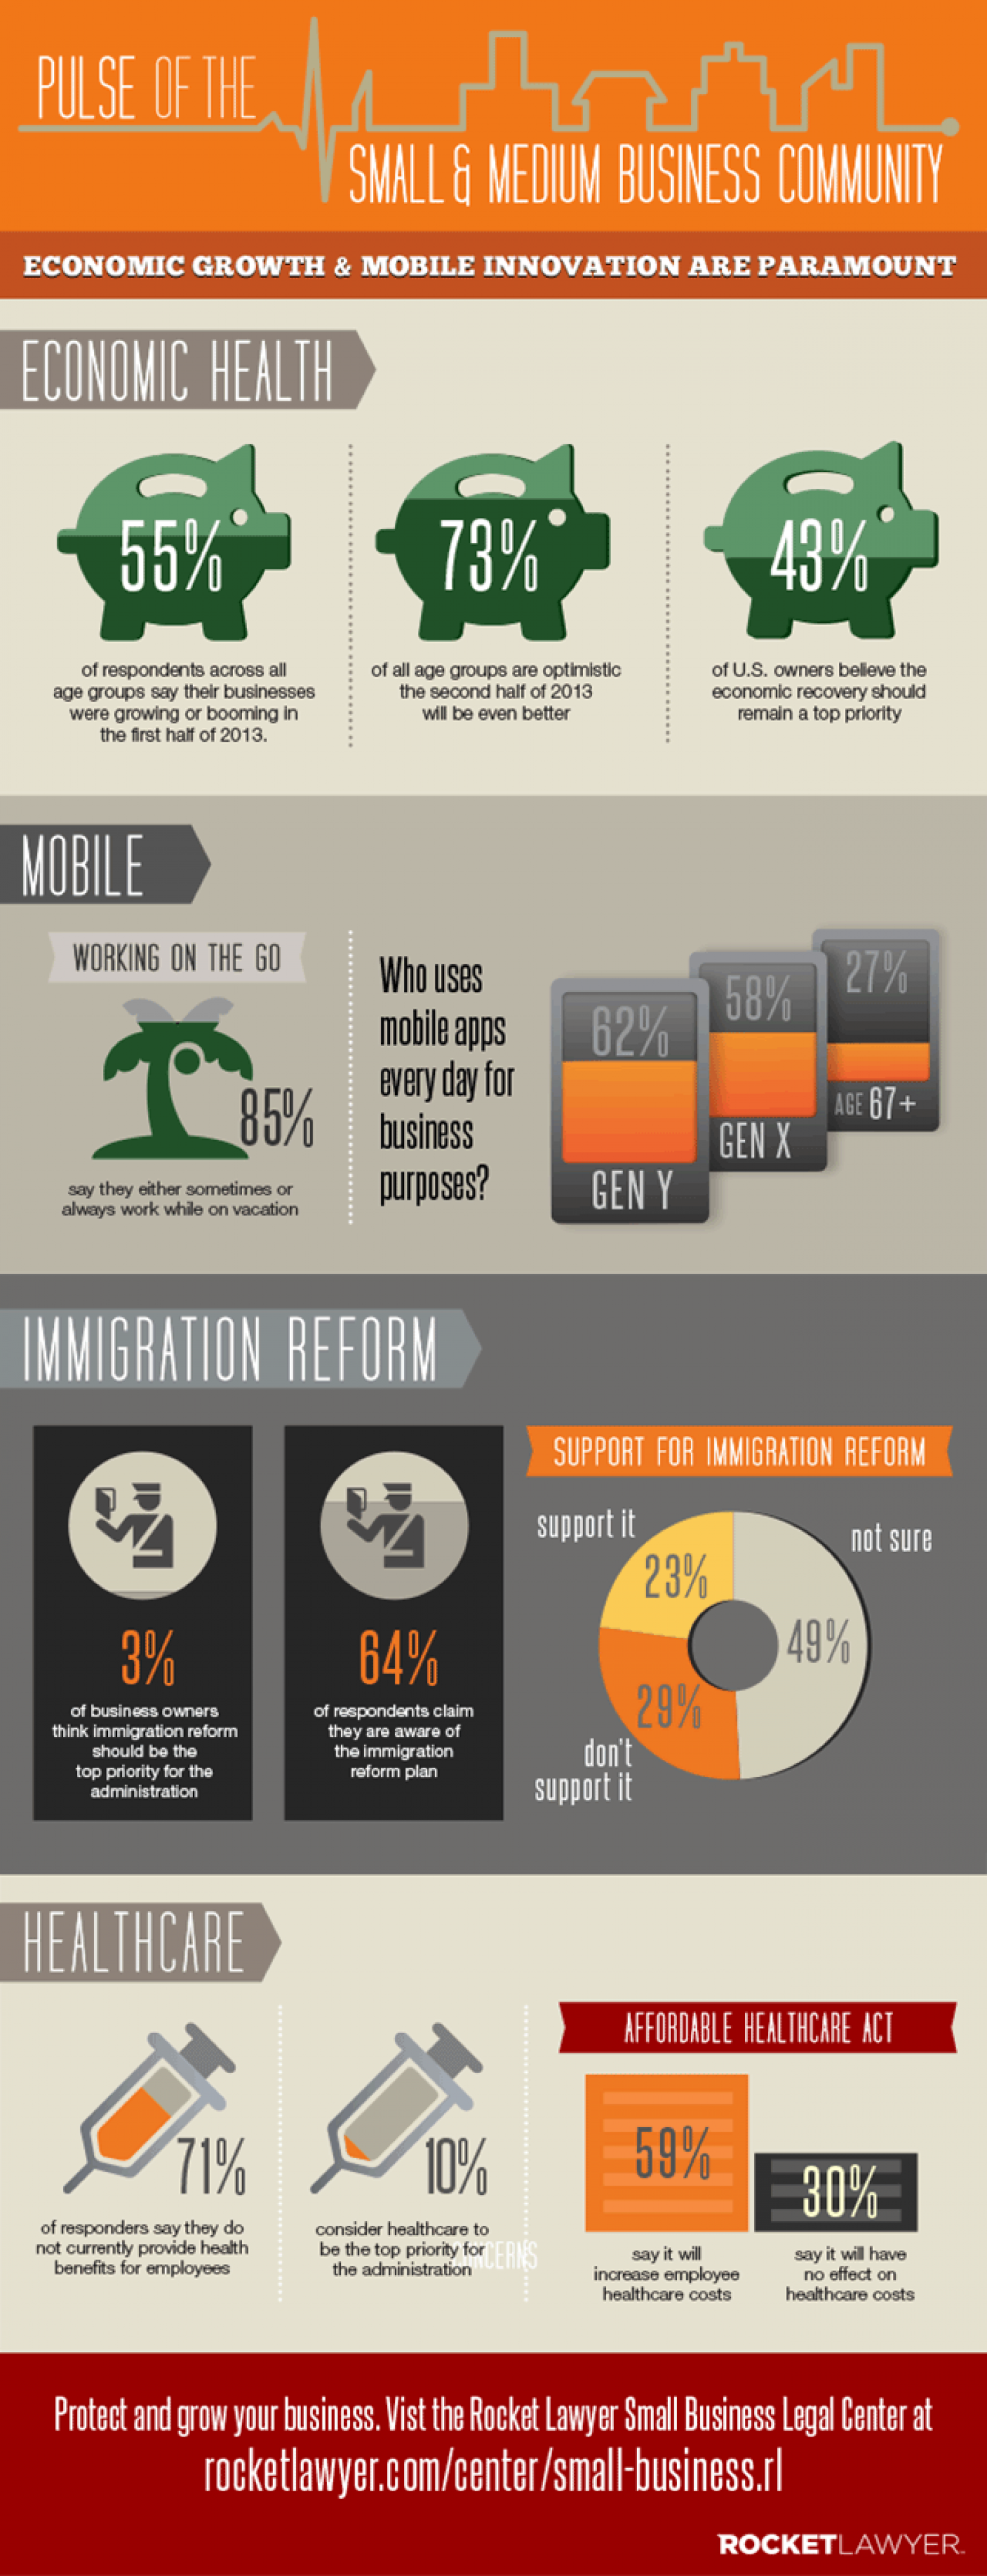 Jun2013 Pulse of the SMB Community Infographic